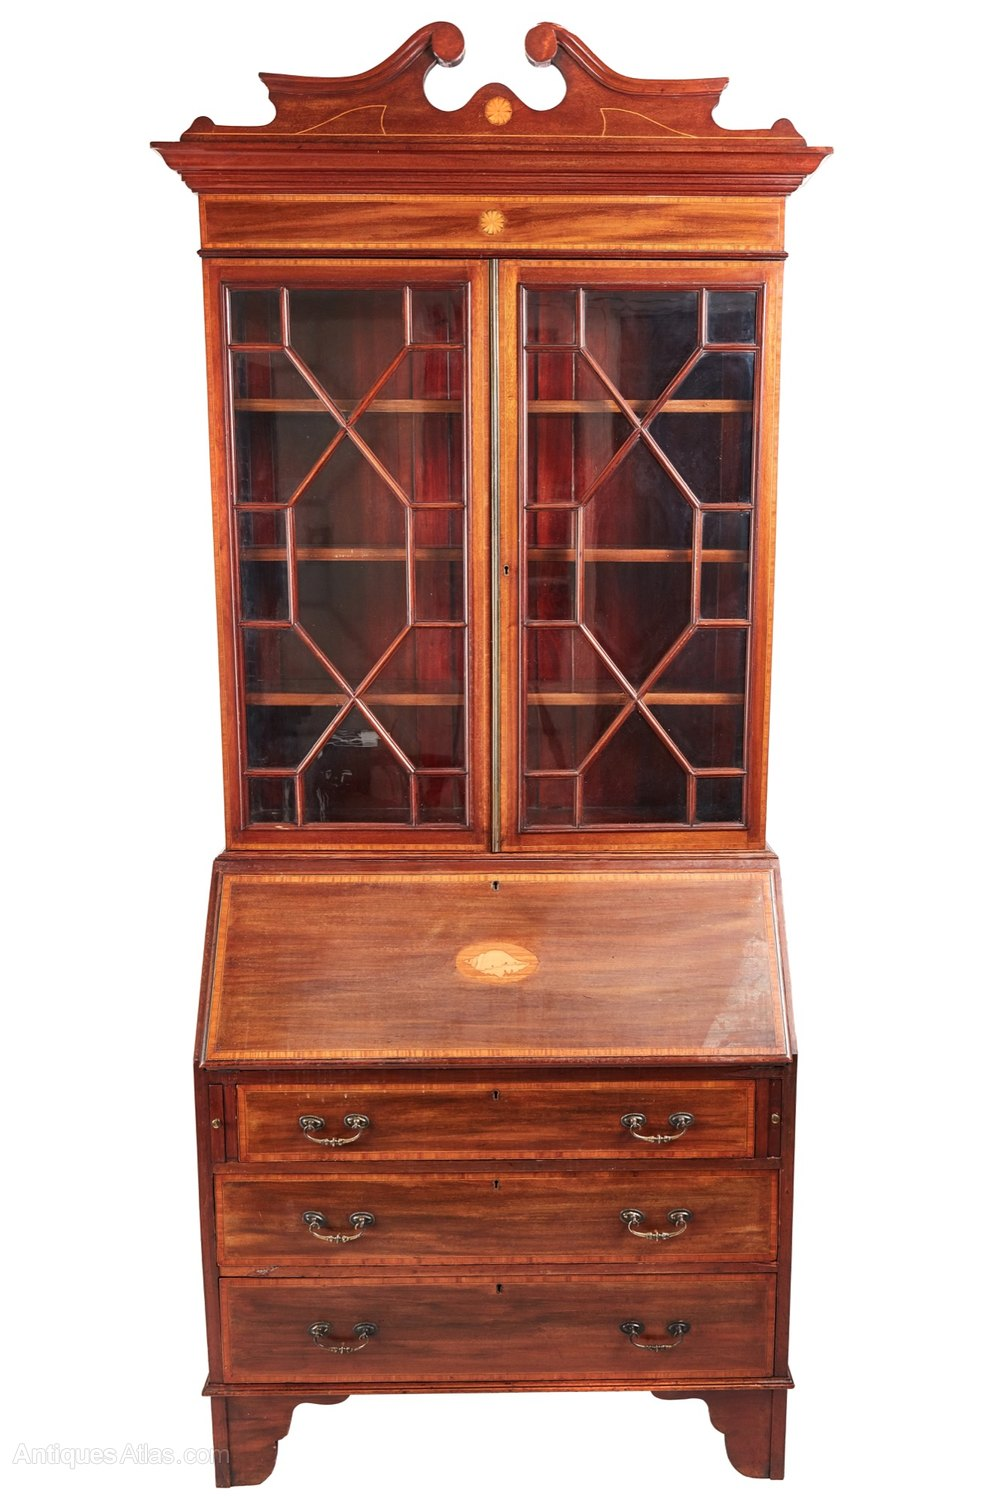 edwardian mahogany inlaid bureau bookcase antiques atlas. Black Bedroom Furniture Sets. Home Design Ideas